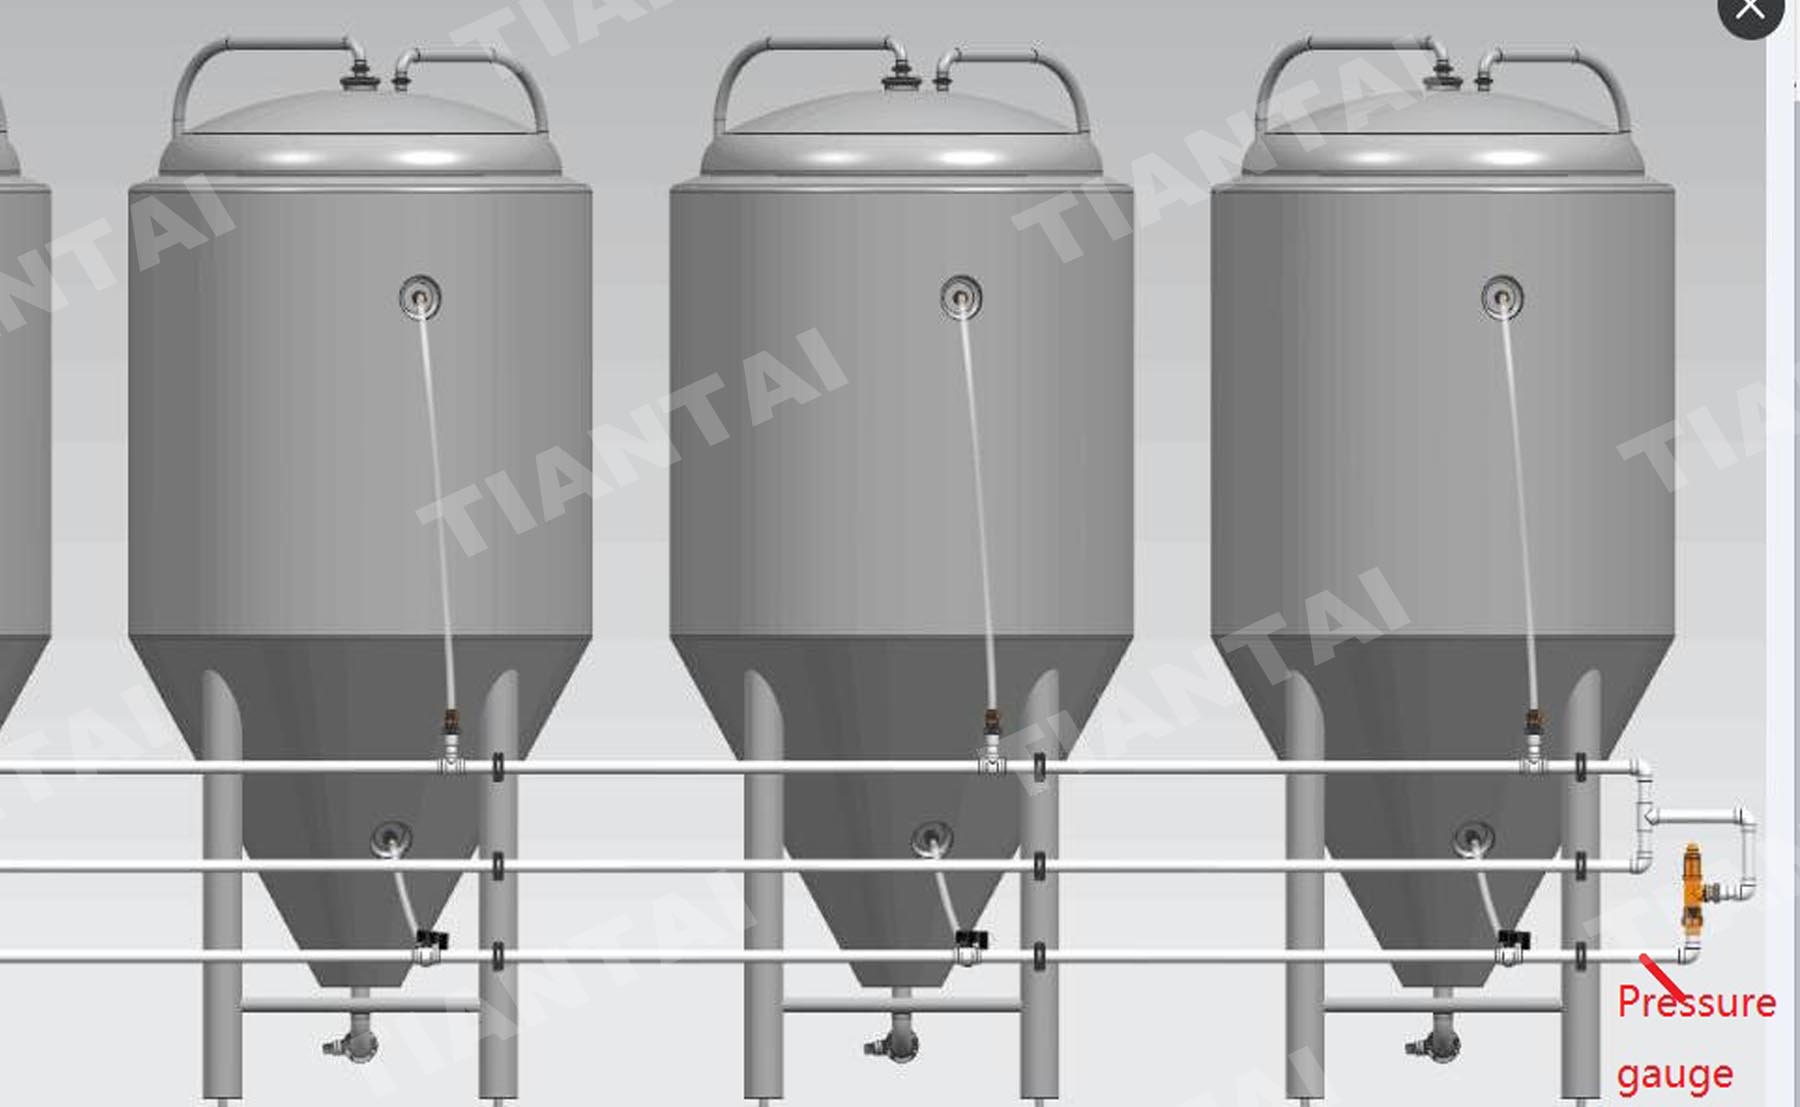 Glycol Water Pipe Connection ways for Brewery Equipment